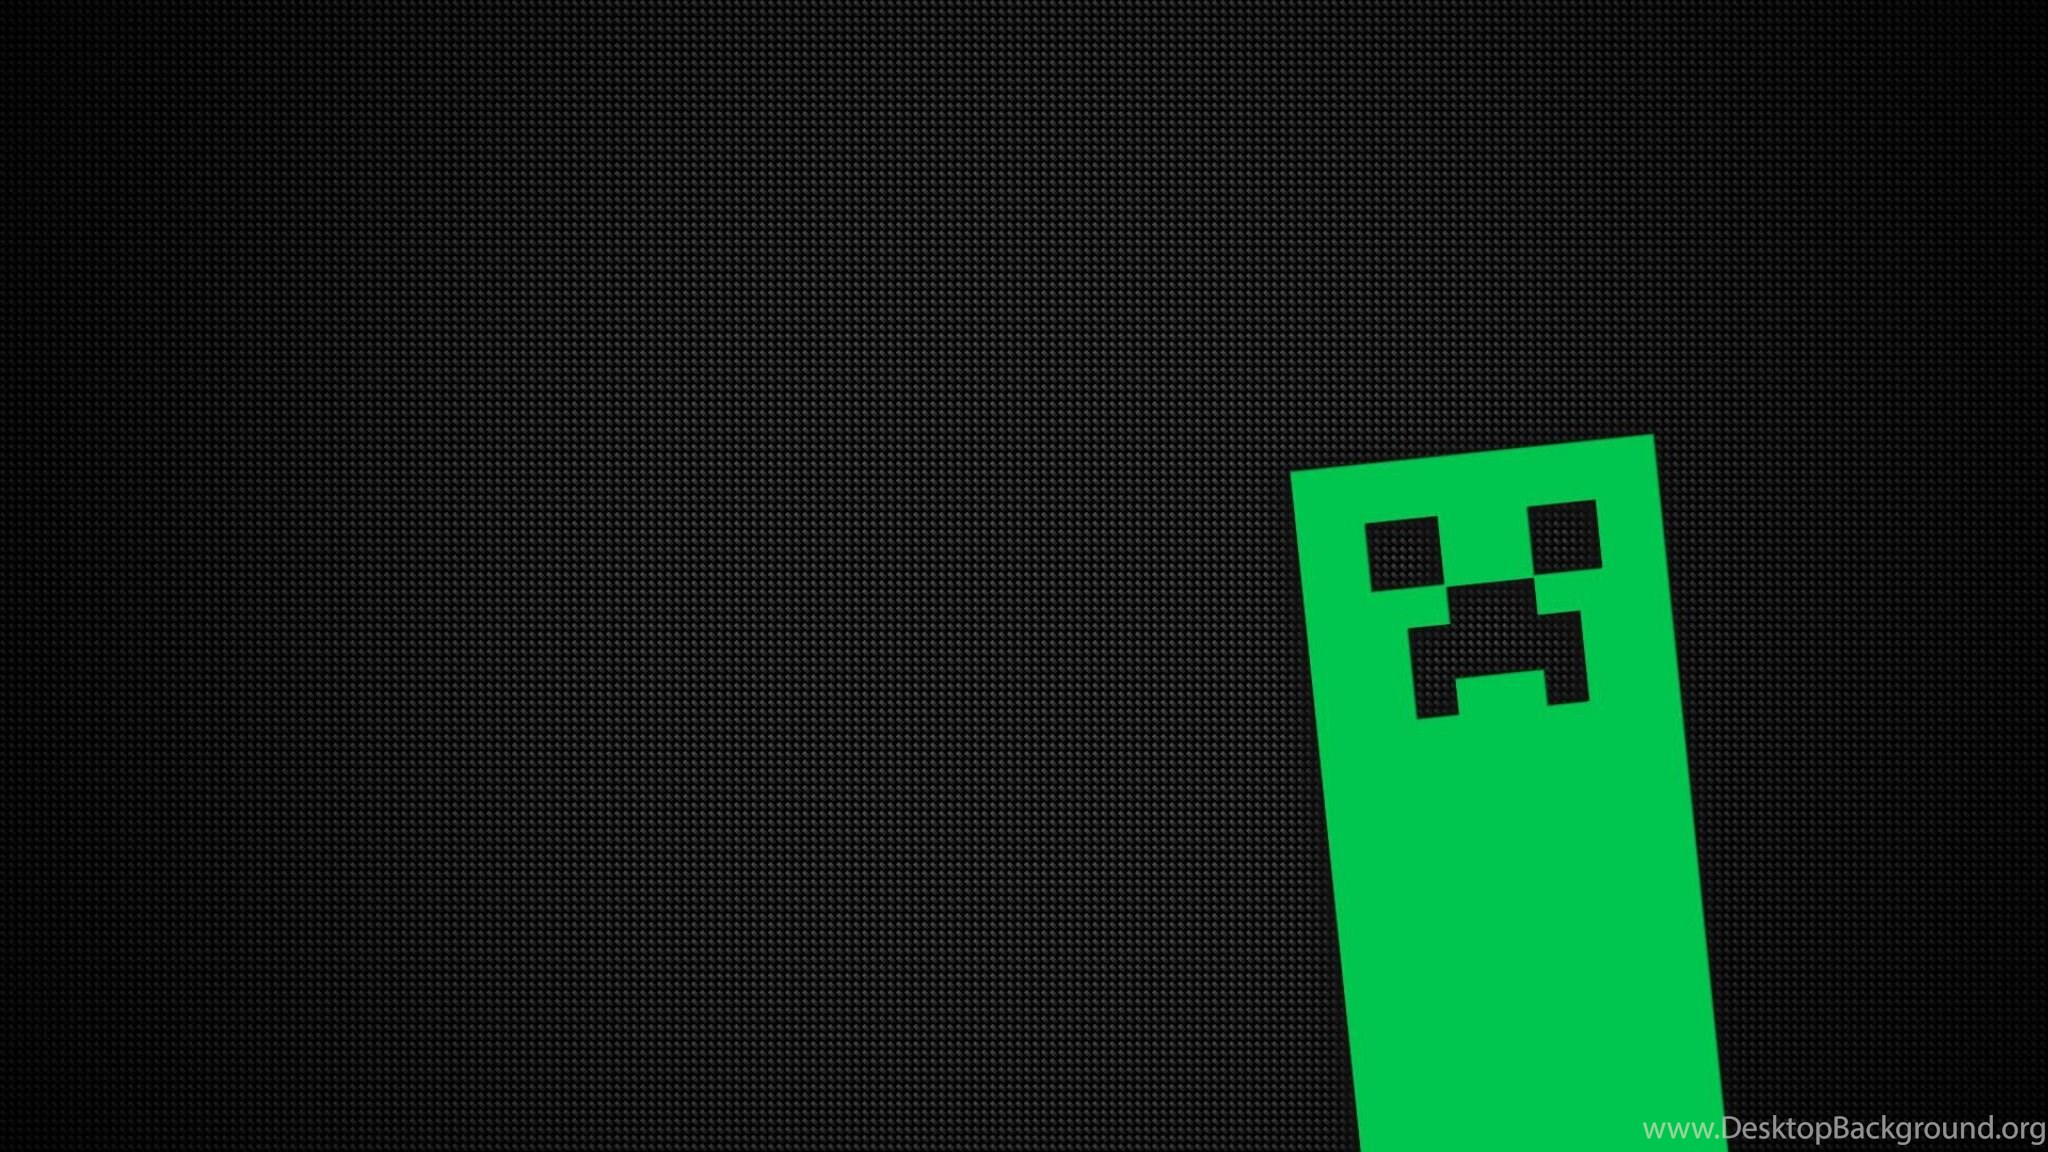 Amazing Wallpaper Minecraft Iphone 4s - 361083_wallpapers-minecraft-creeper-2048x1152_2048x1152_h  Snapshot_852097.jpg